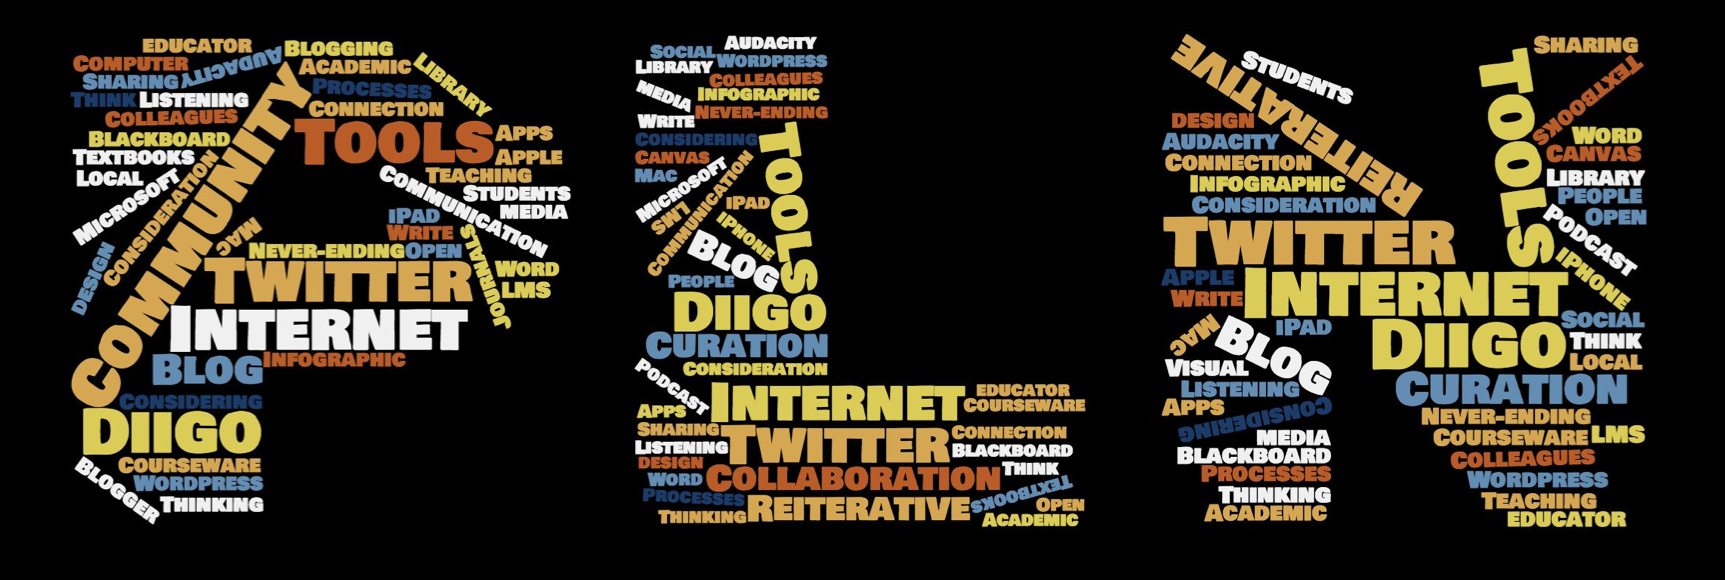 Word cloud that spells out PLN. Words include things like reiterative, never-ending, communication, collaboration, internet, diigo, library